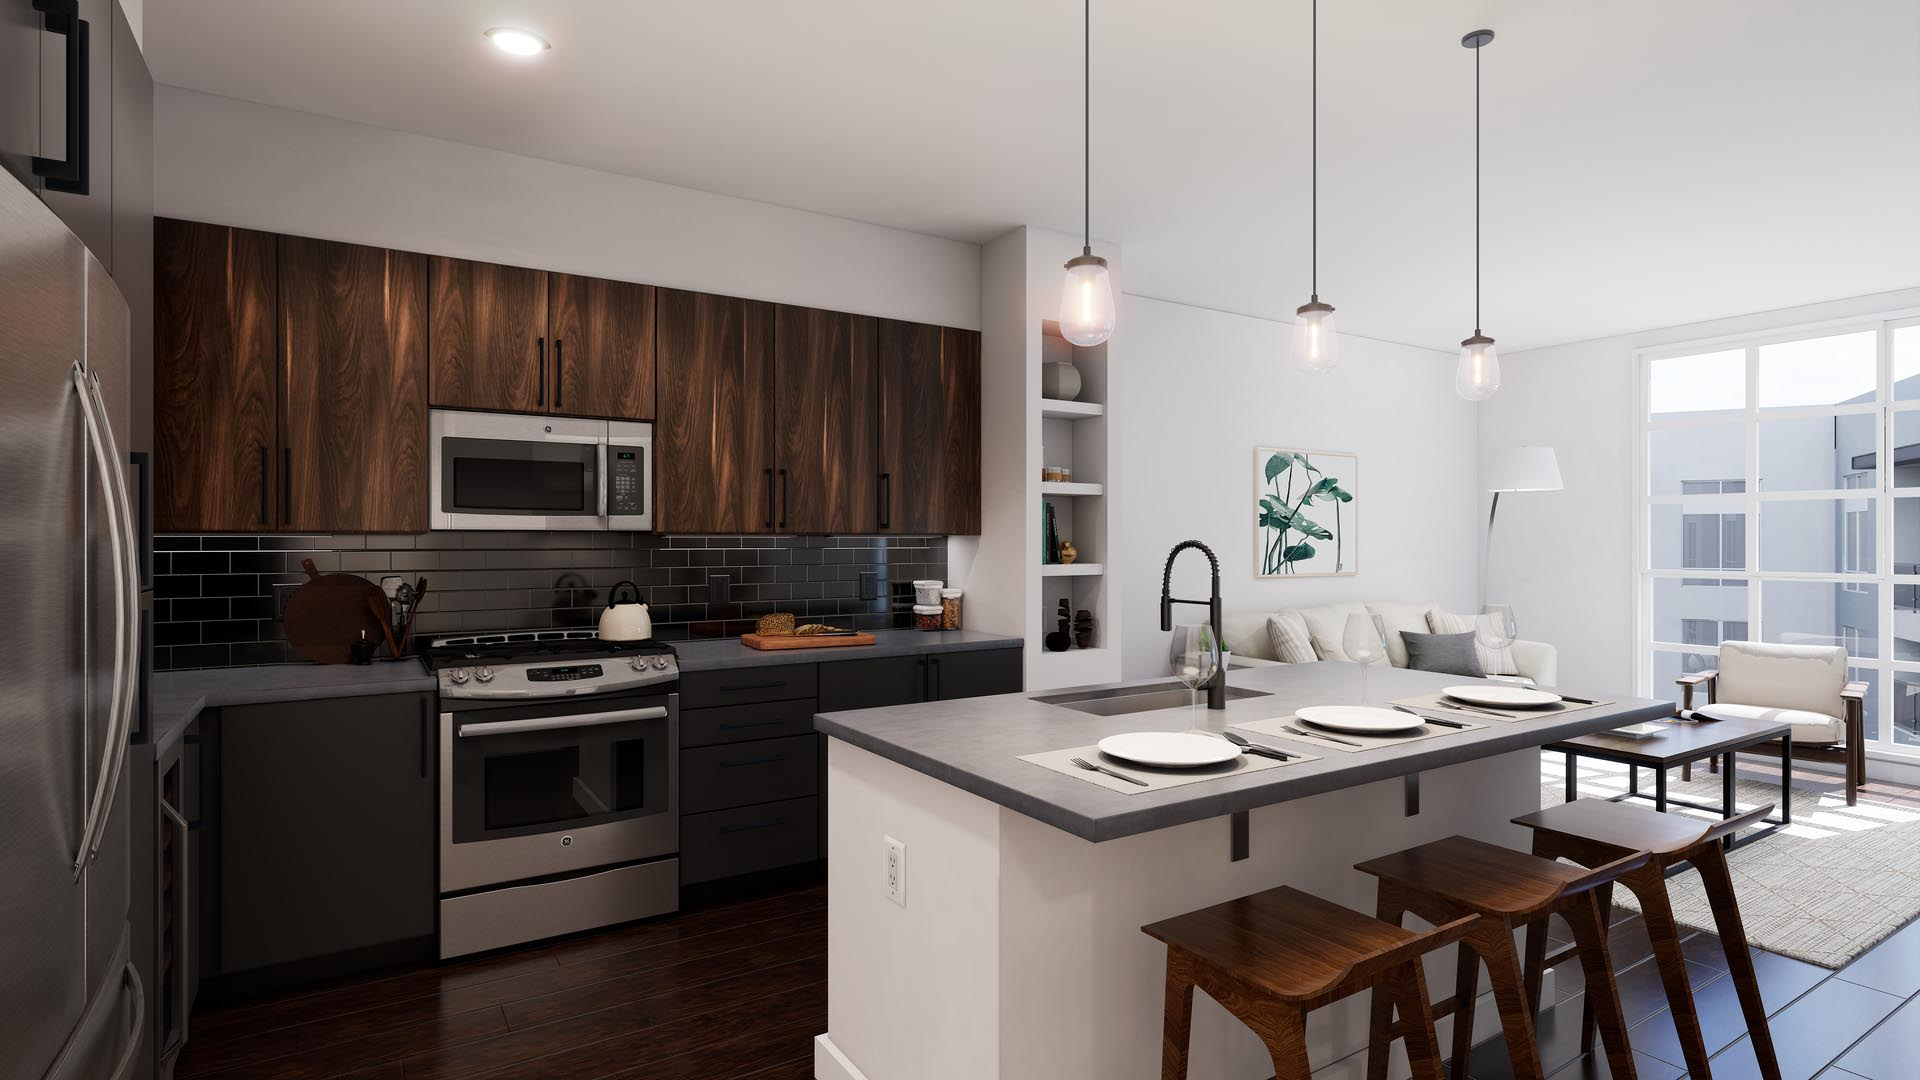 An apartment kitchen with finish option 3